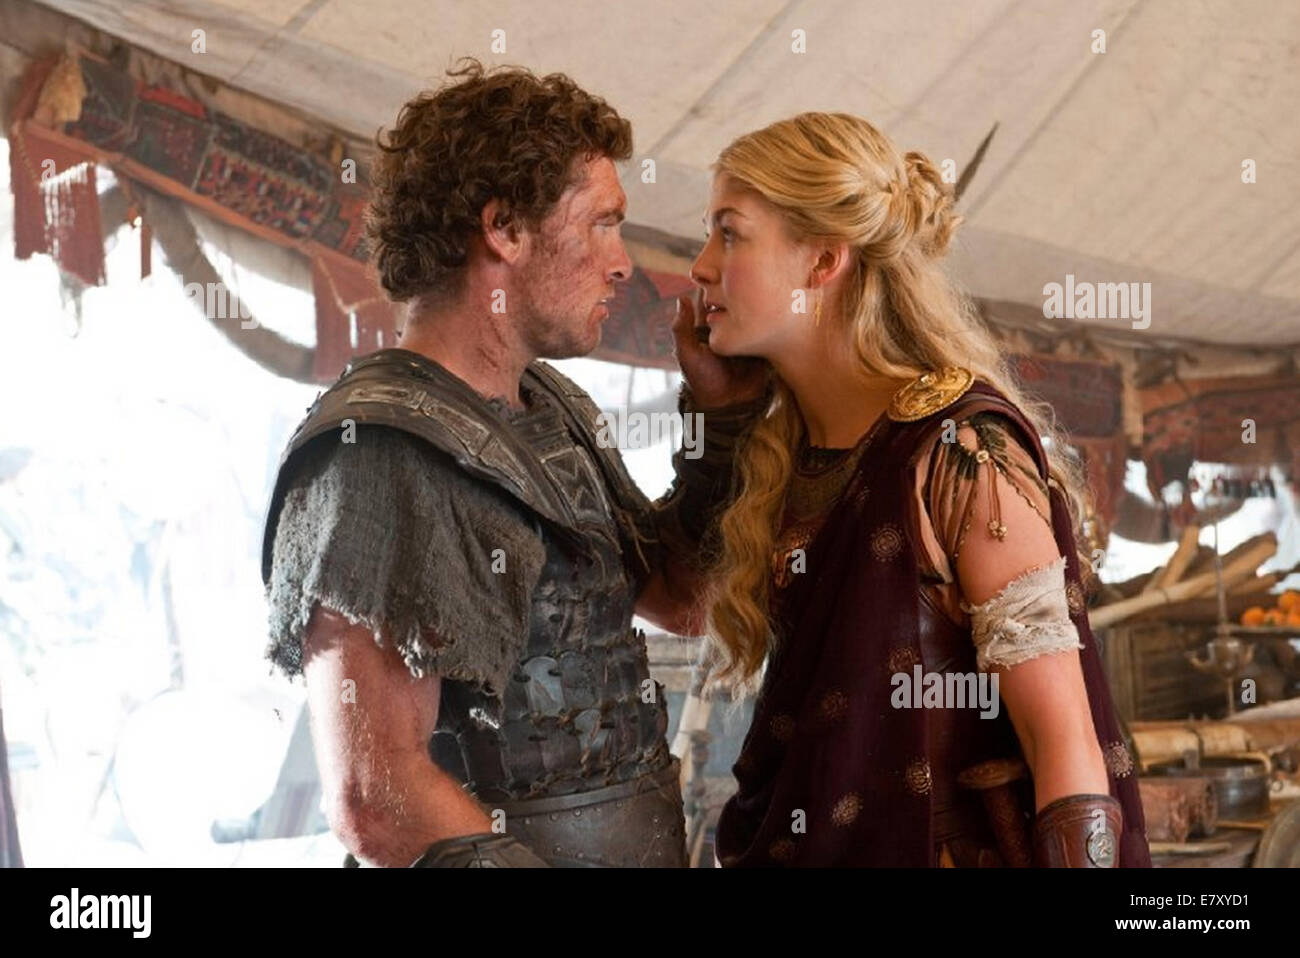 WRATH OF THE TITANS 2012 Warner Bros film with Rosamund Pike and Sam Worthington - Stock Image